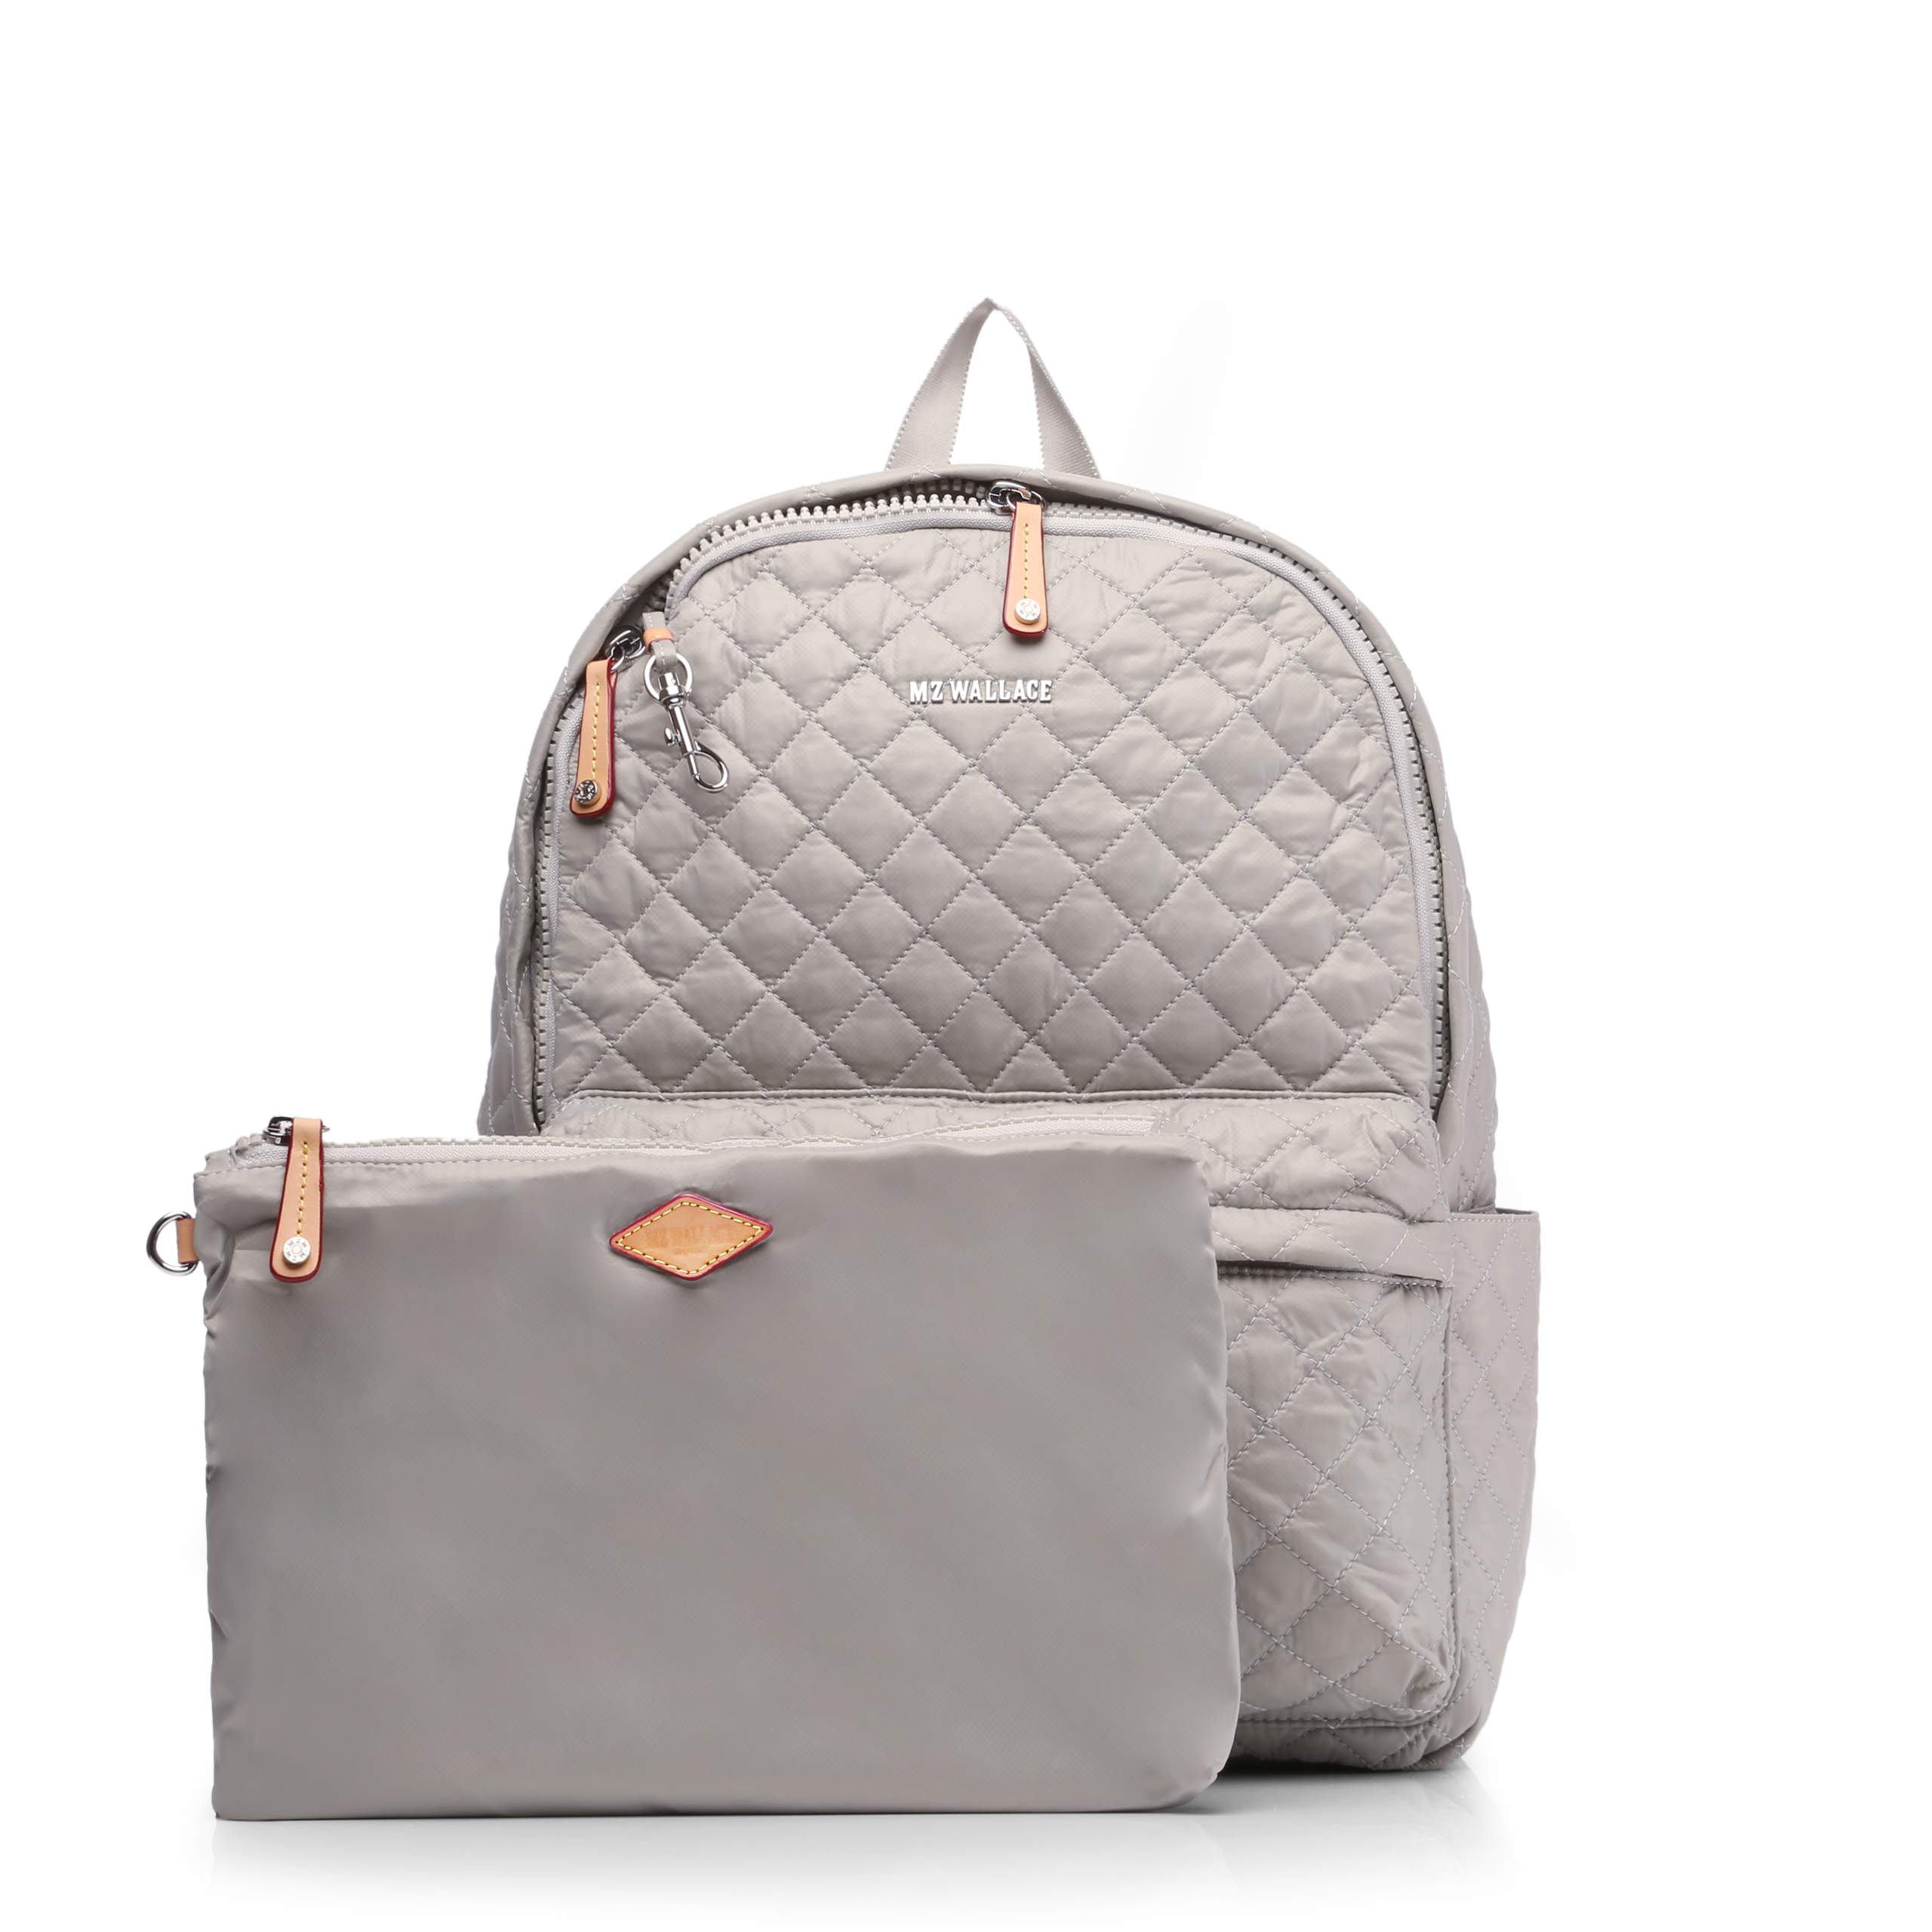 Paloma Oxford Medium Metro Backpack (7661372) in color Paloma